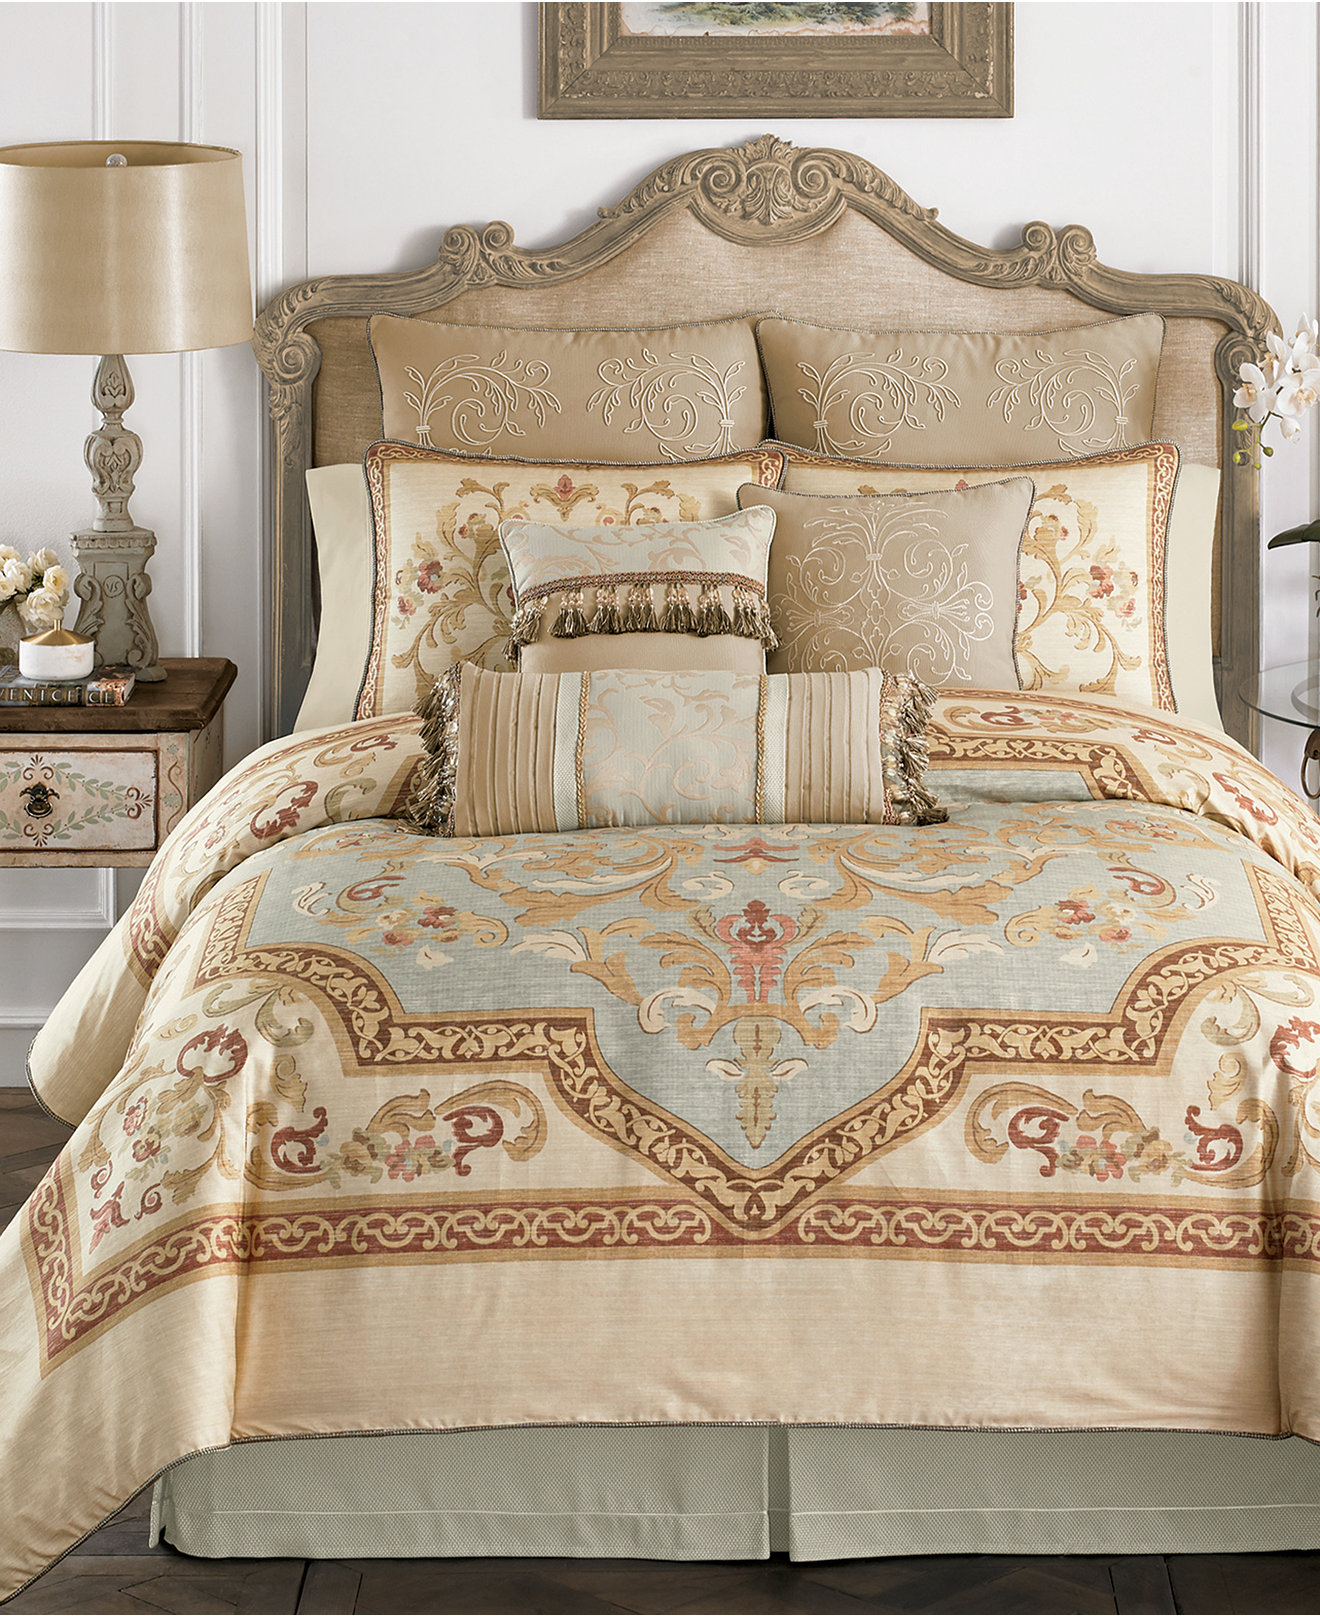 Croscill Comforter Sets Clearance